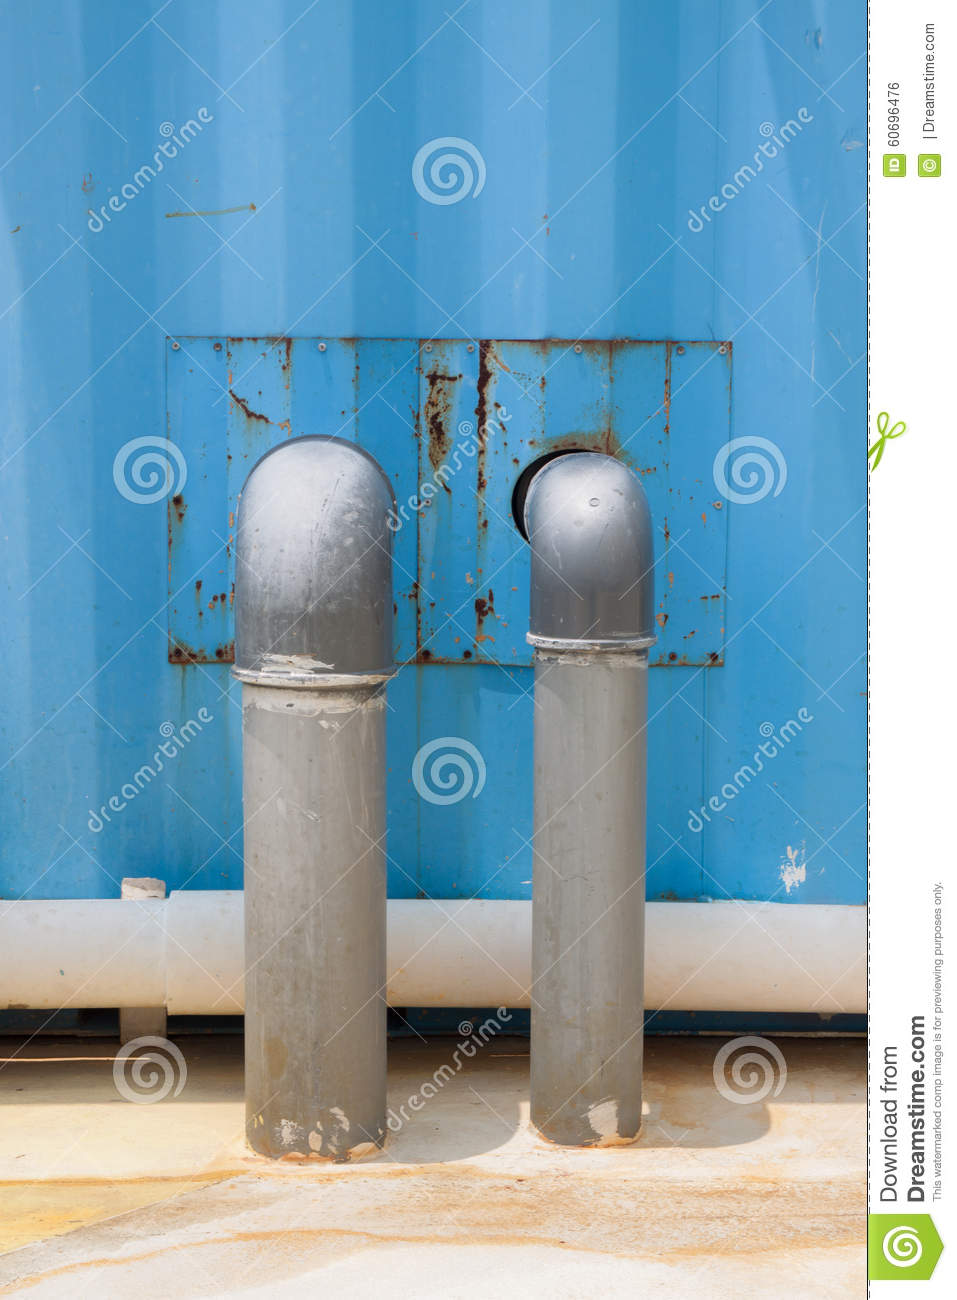 Water steel pipe stock photo image 60696476 for Water pipe material